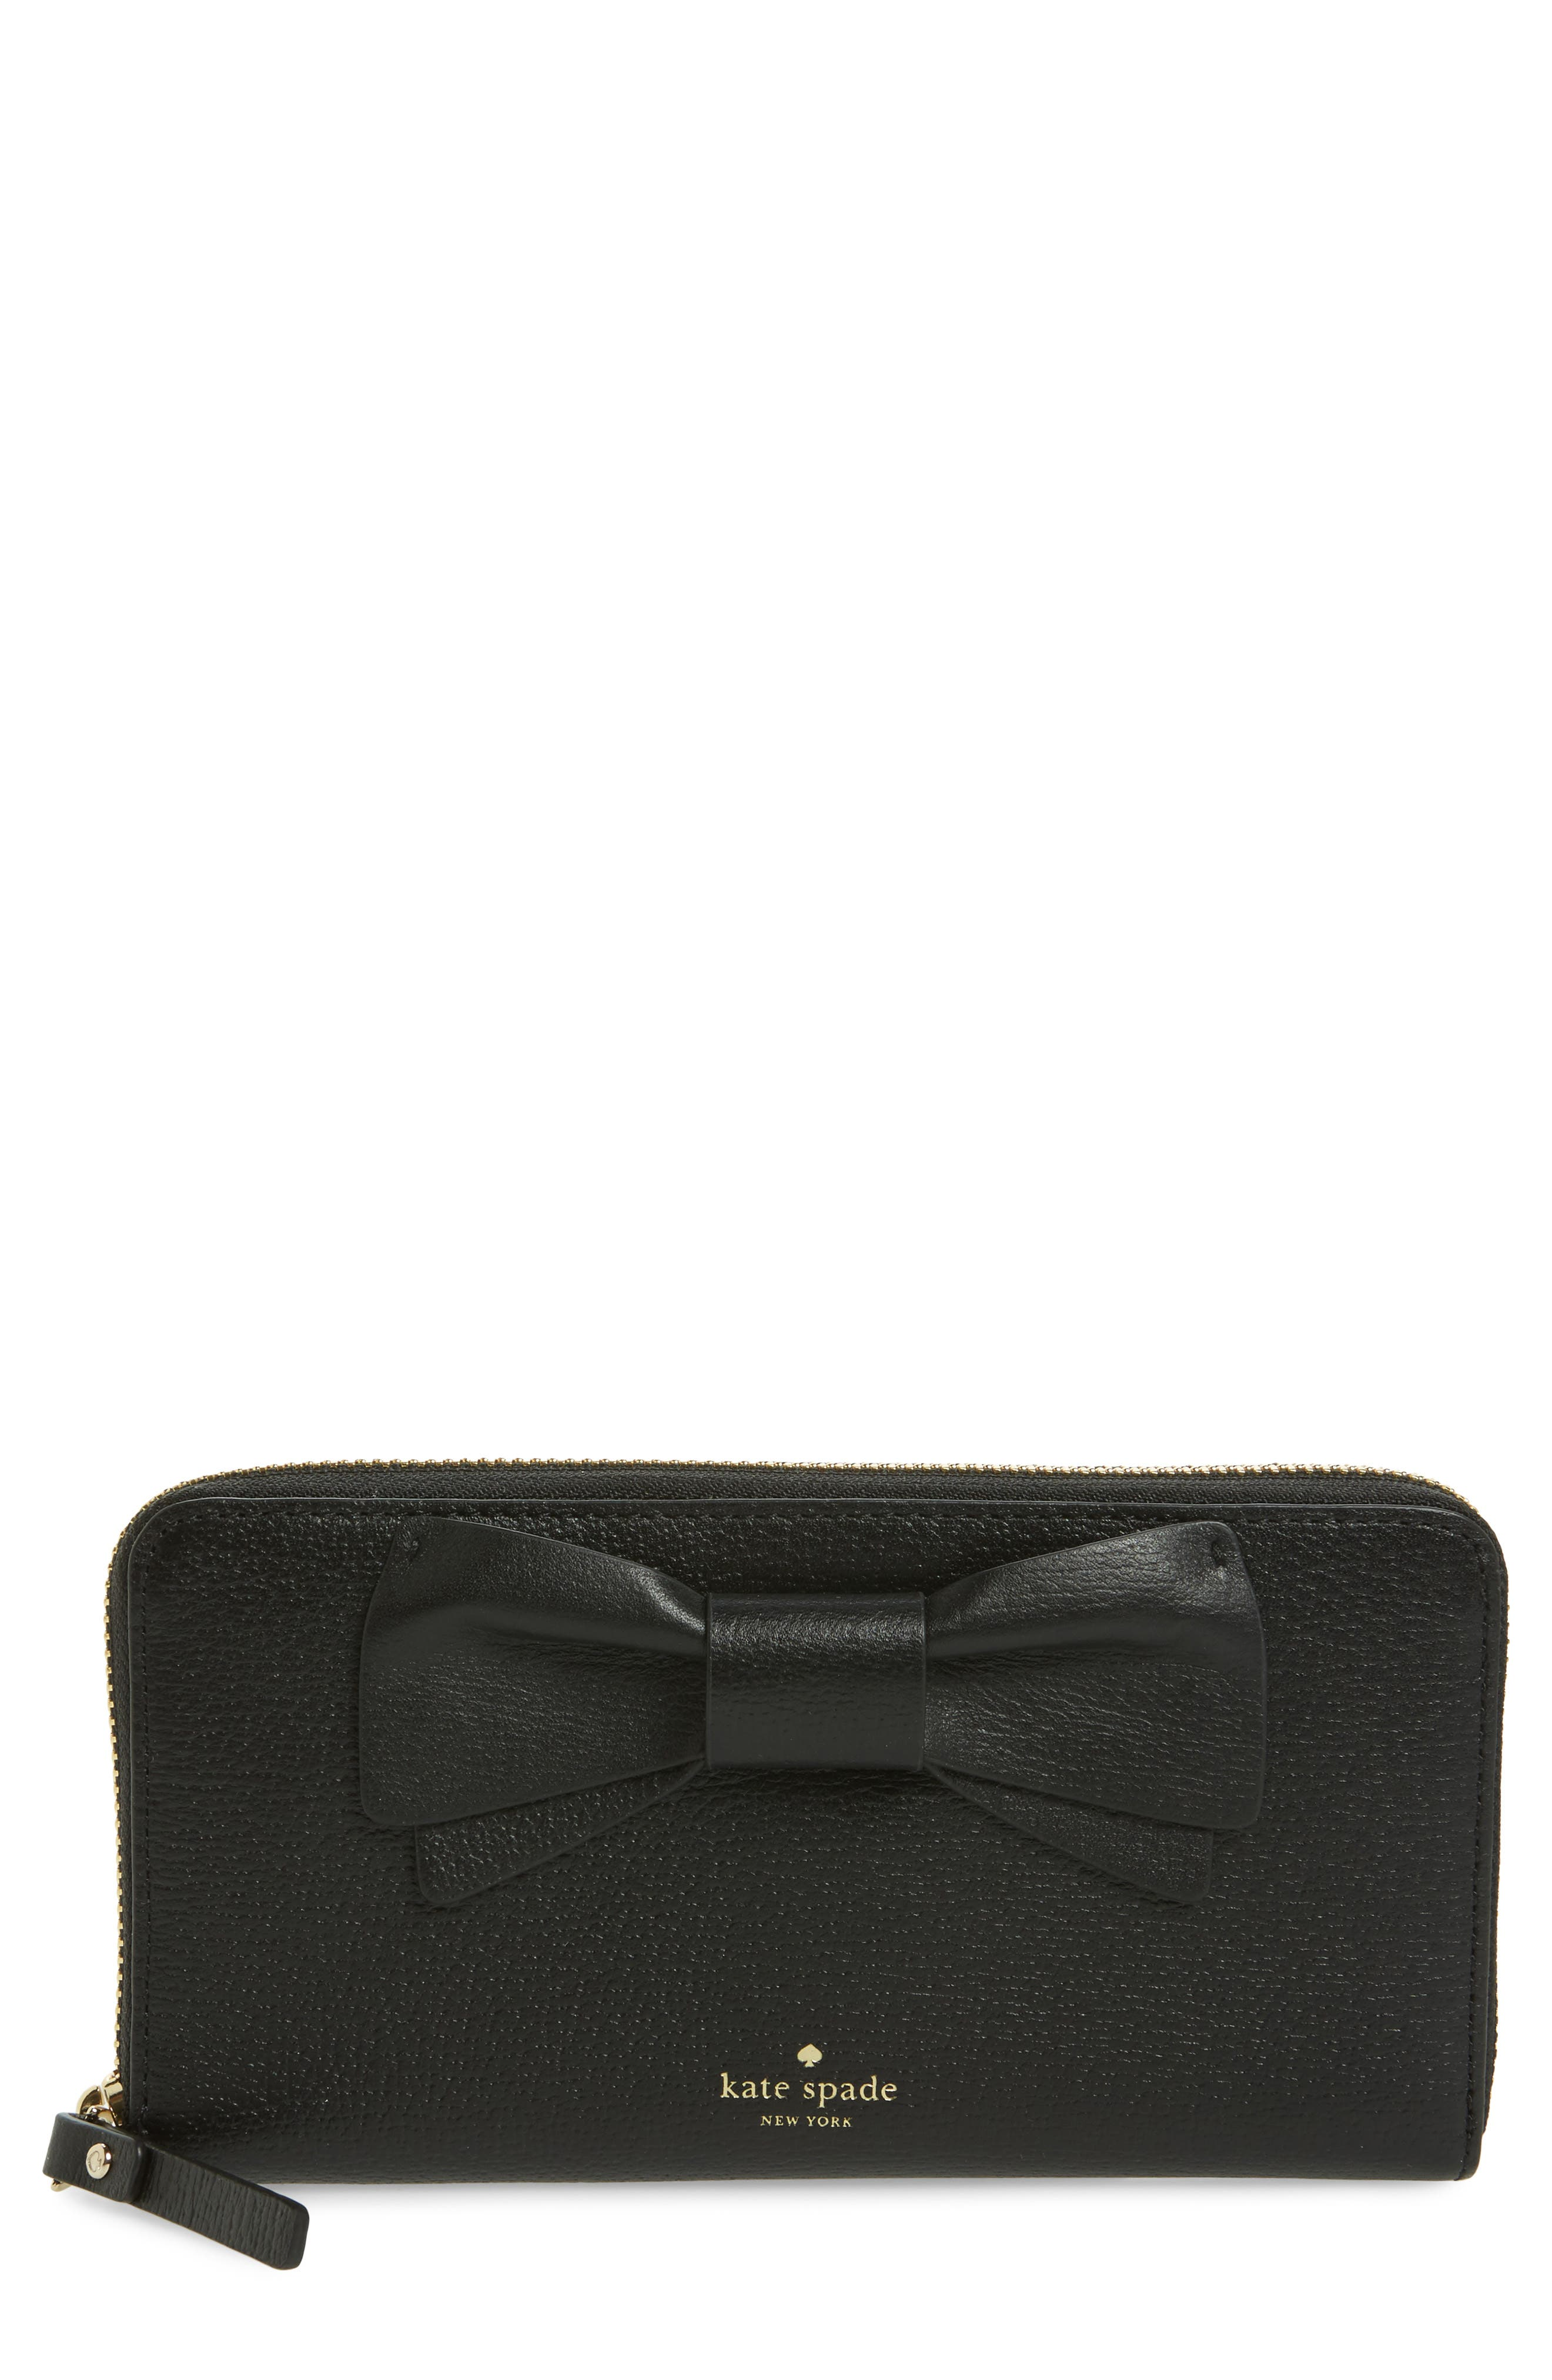 Main Image - kate spade new york olive drive - lacey bow leather wallet